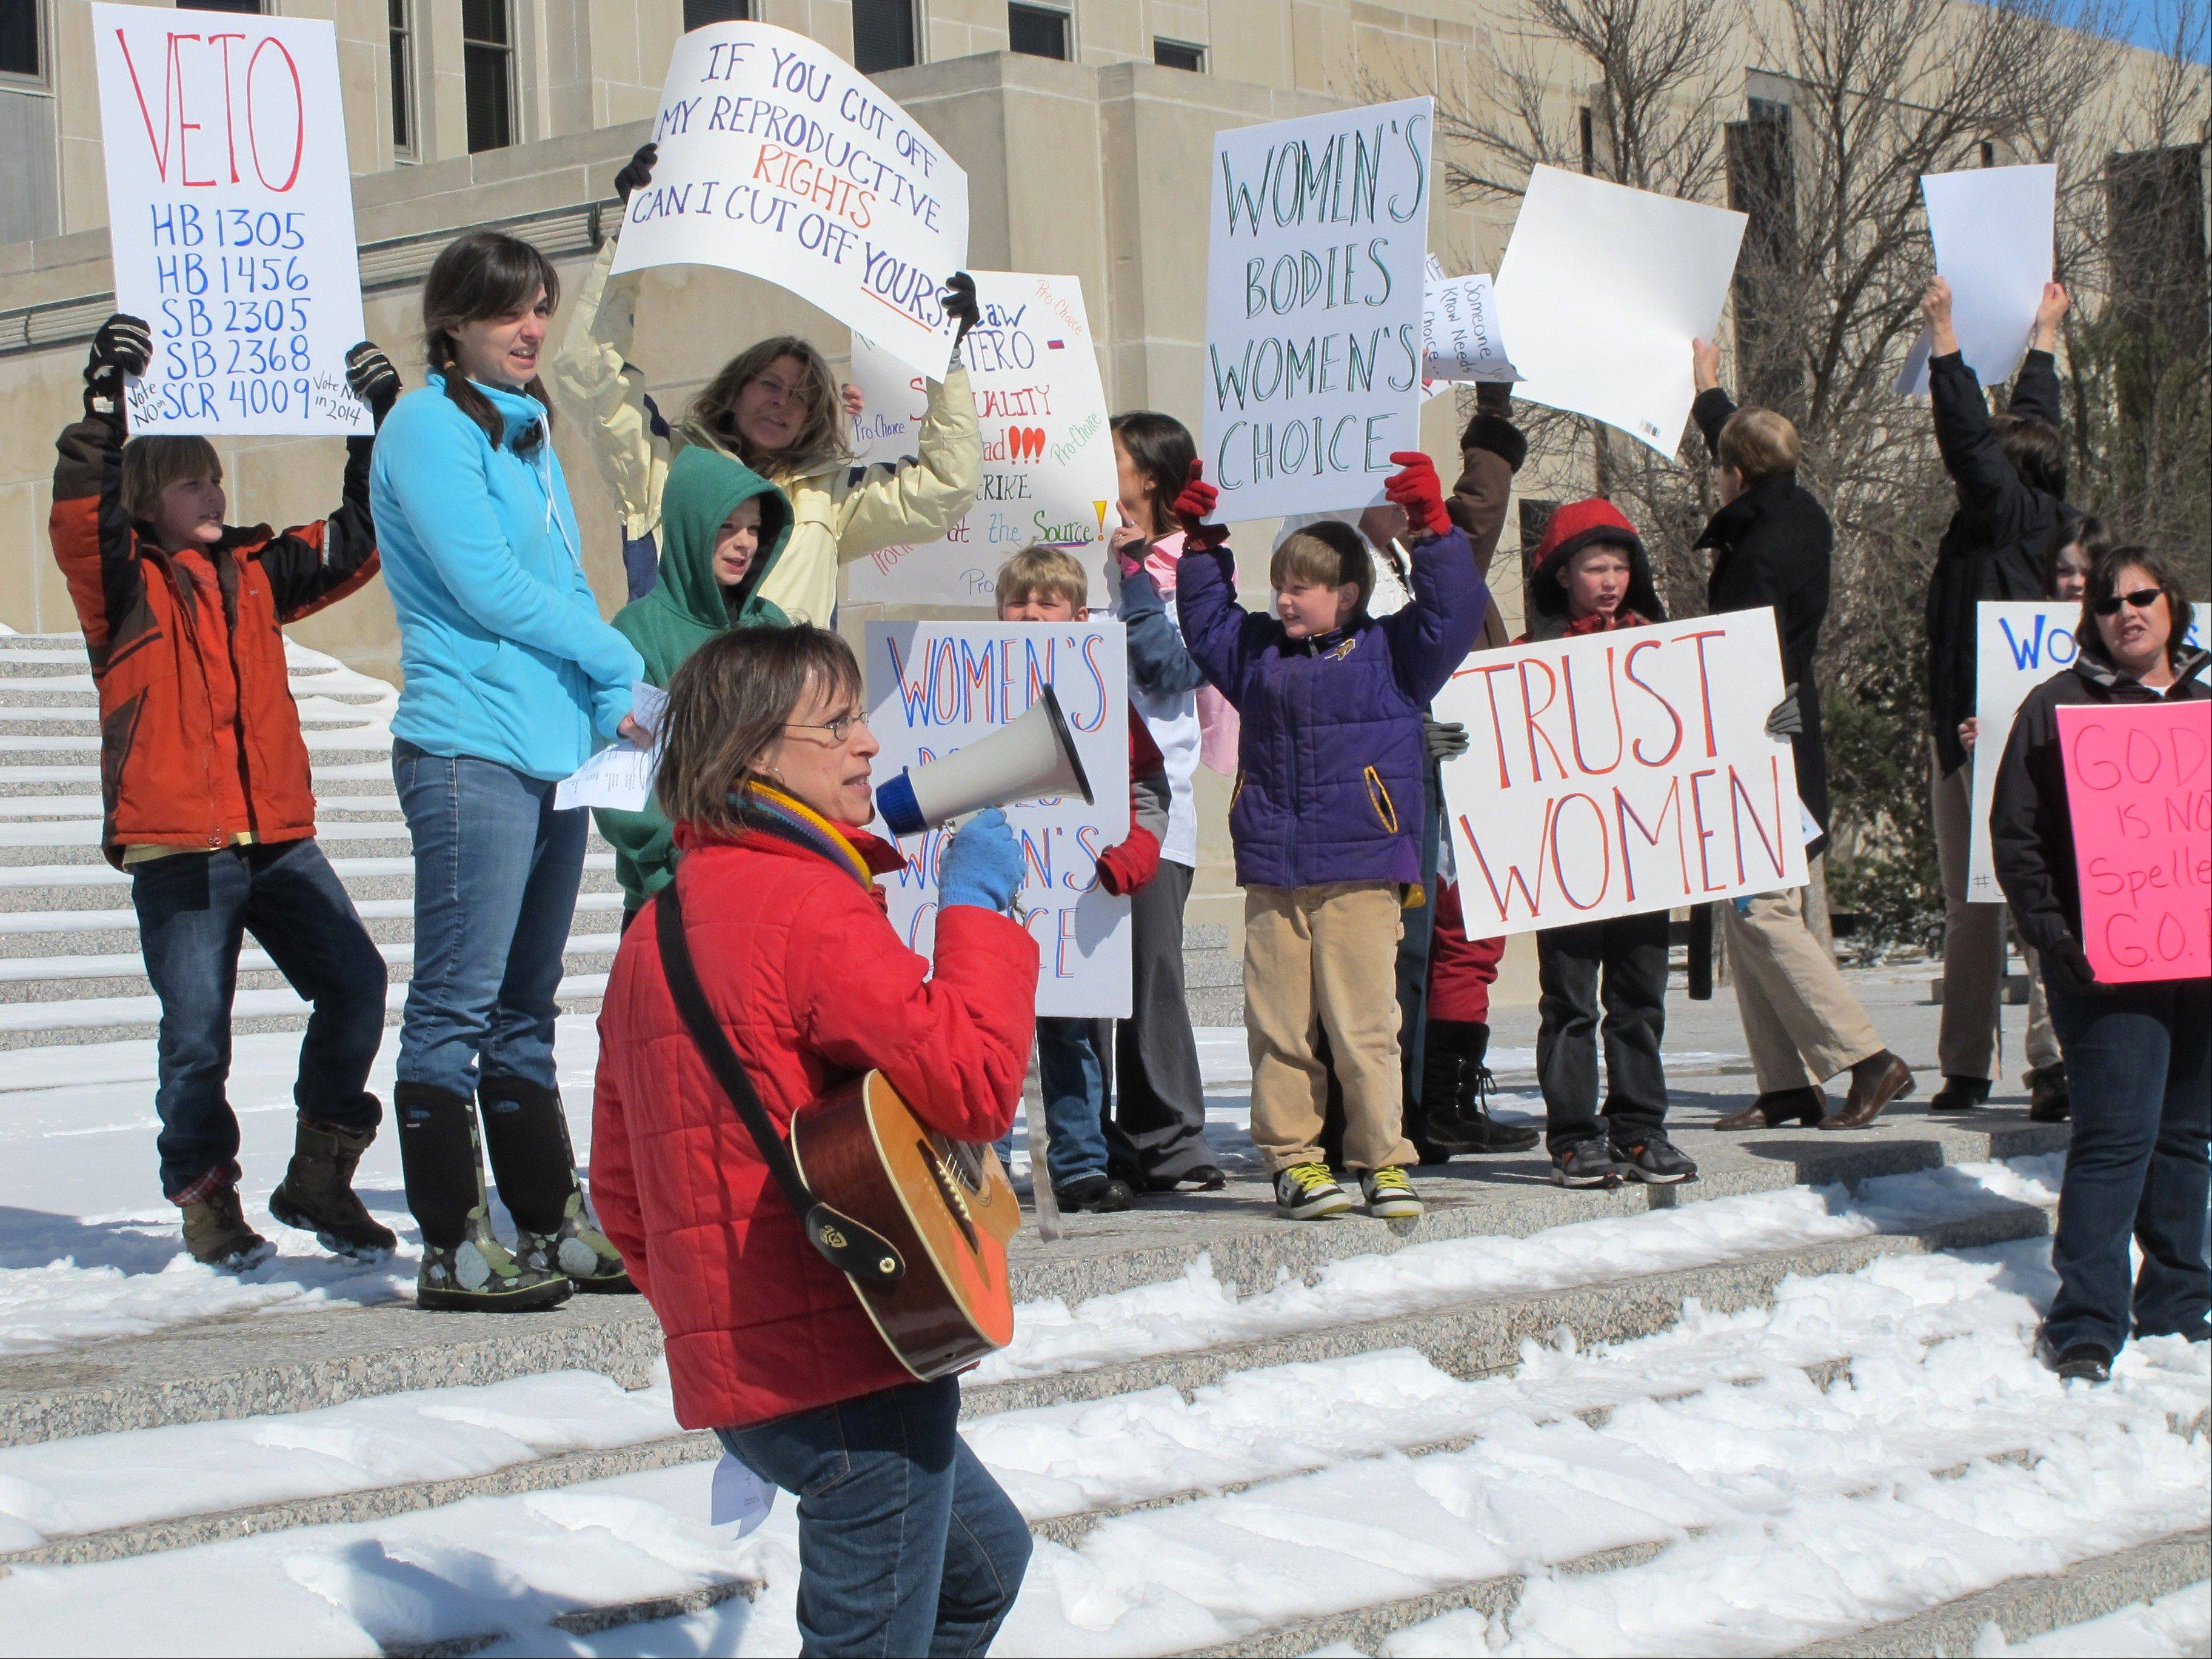 An abortion-rights rally is held at the state Capitol in Bismarck, N.D., on March 25. Rival legal teams, each well-financed and highly motivated, are girding for high-stakes court battles over the coming months on laws enacted in Arkansas and North Dakota that would impose the nation�s toughest bans on abortion.